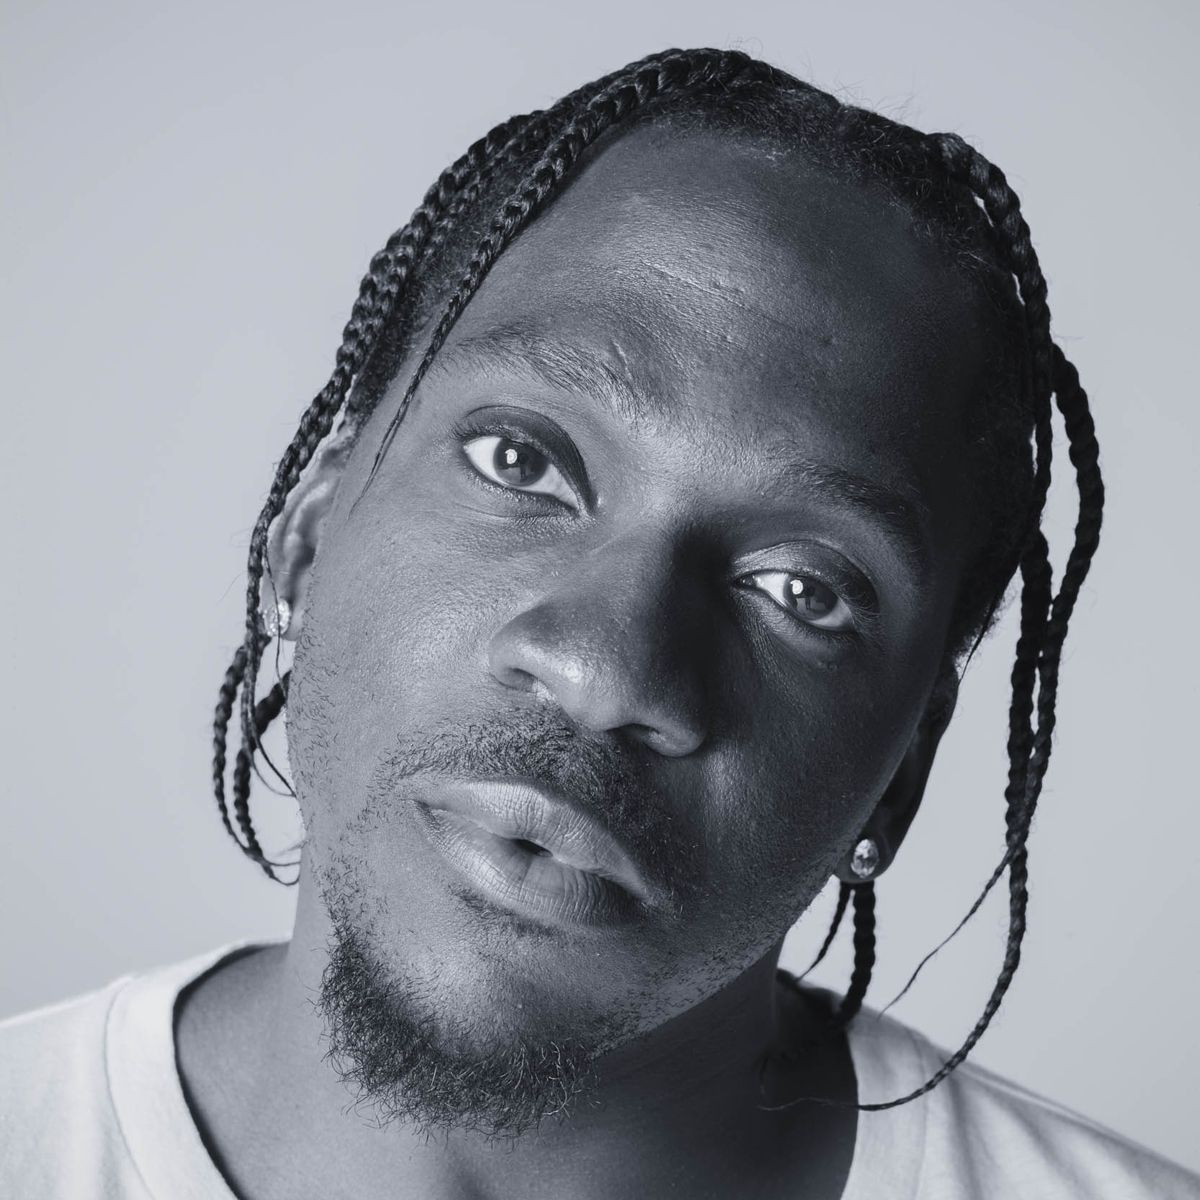 The King Of Eqt – Pusha T Interview5